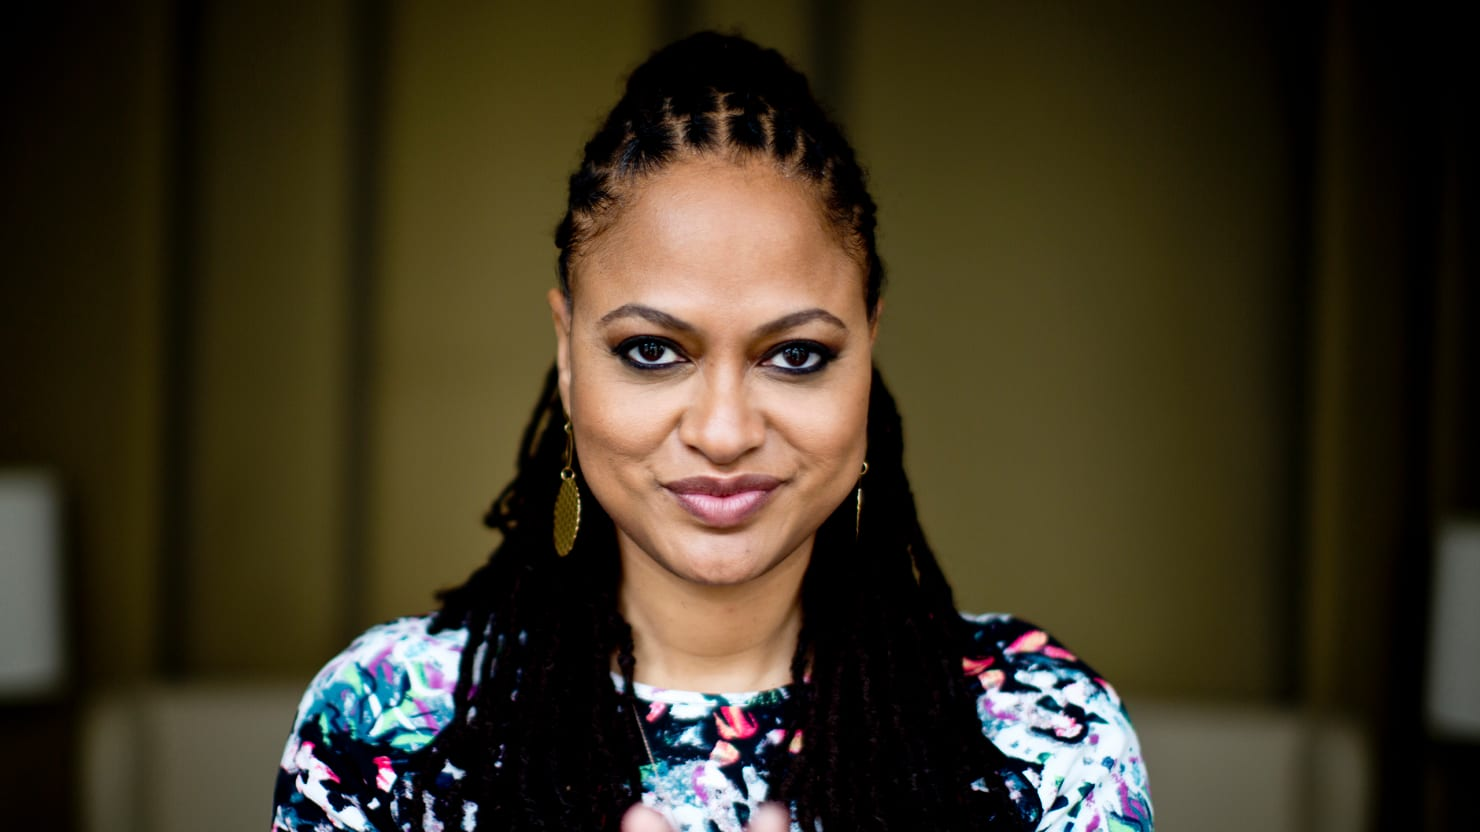 Ava DuVernay, African American Entertainment, African American Film, Black Entertainment, Black Film, KOLUMN Magazine, KOLUMN, KINDR'D Magazine, KINDR'D